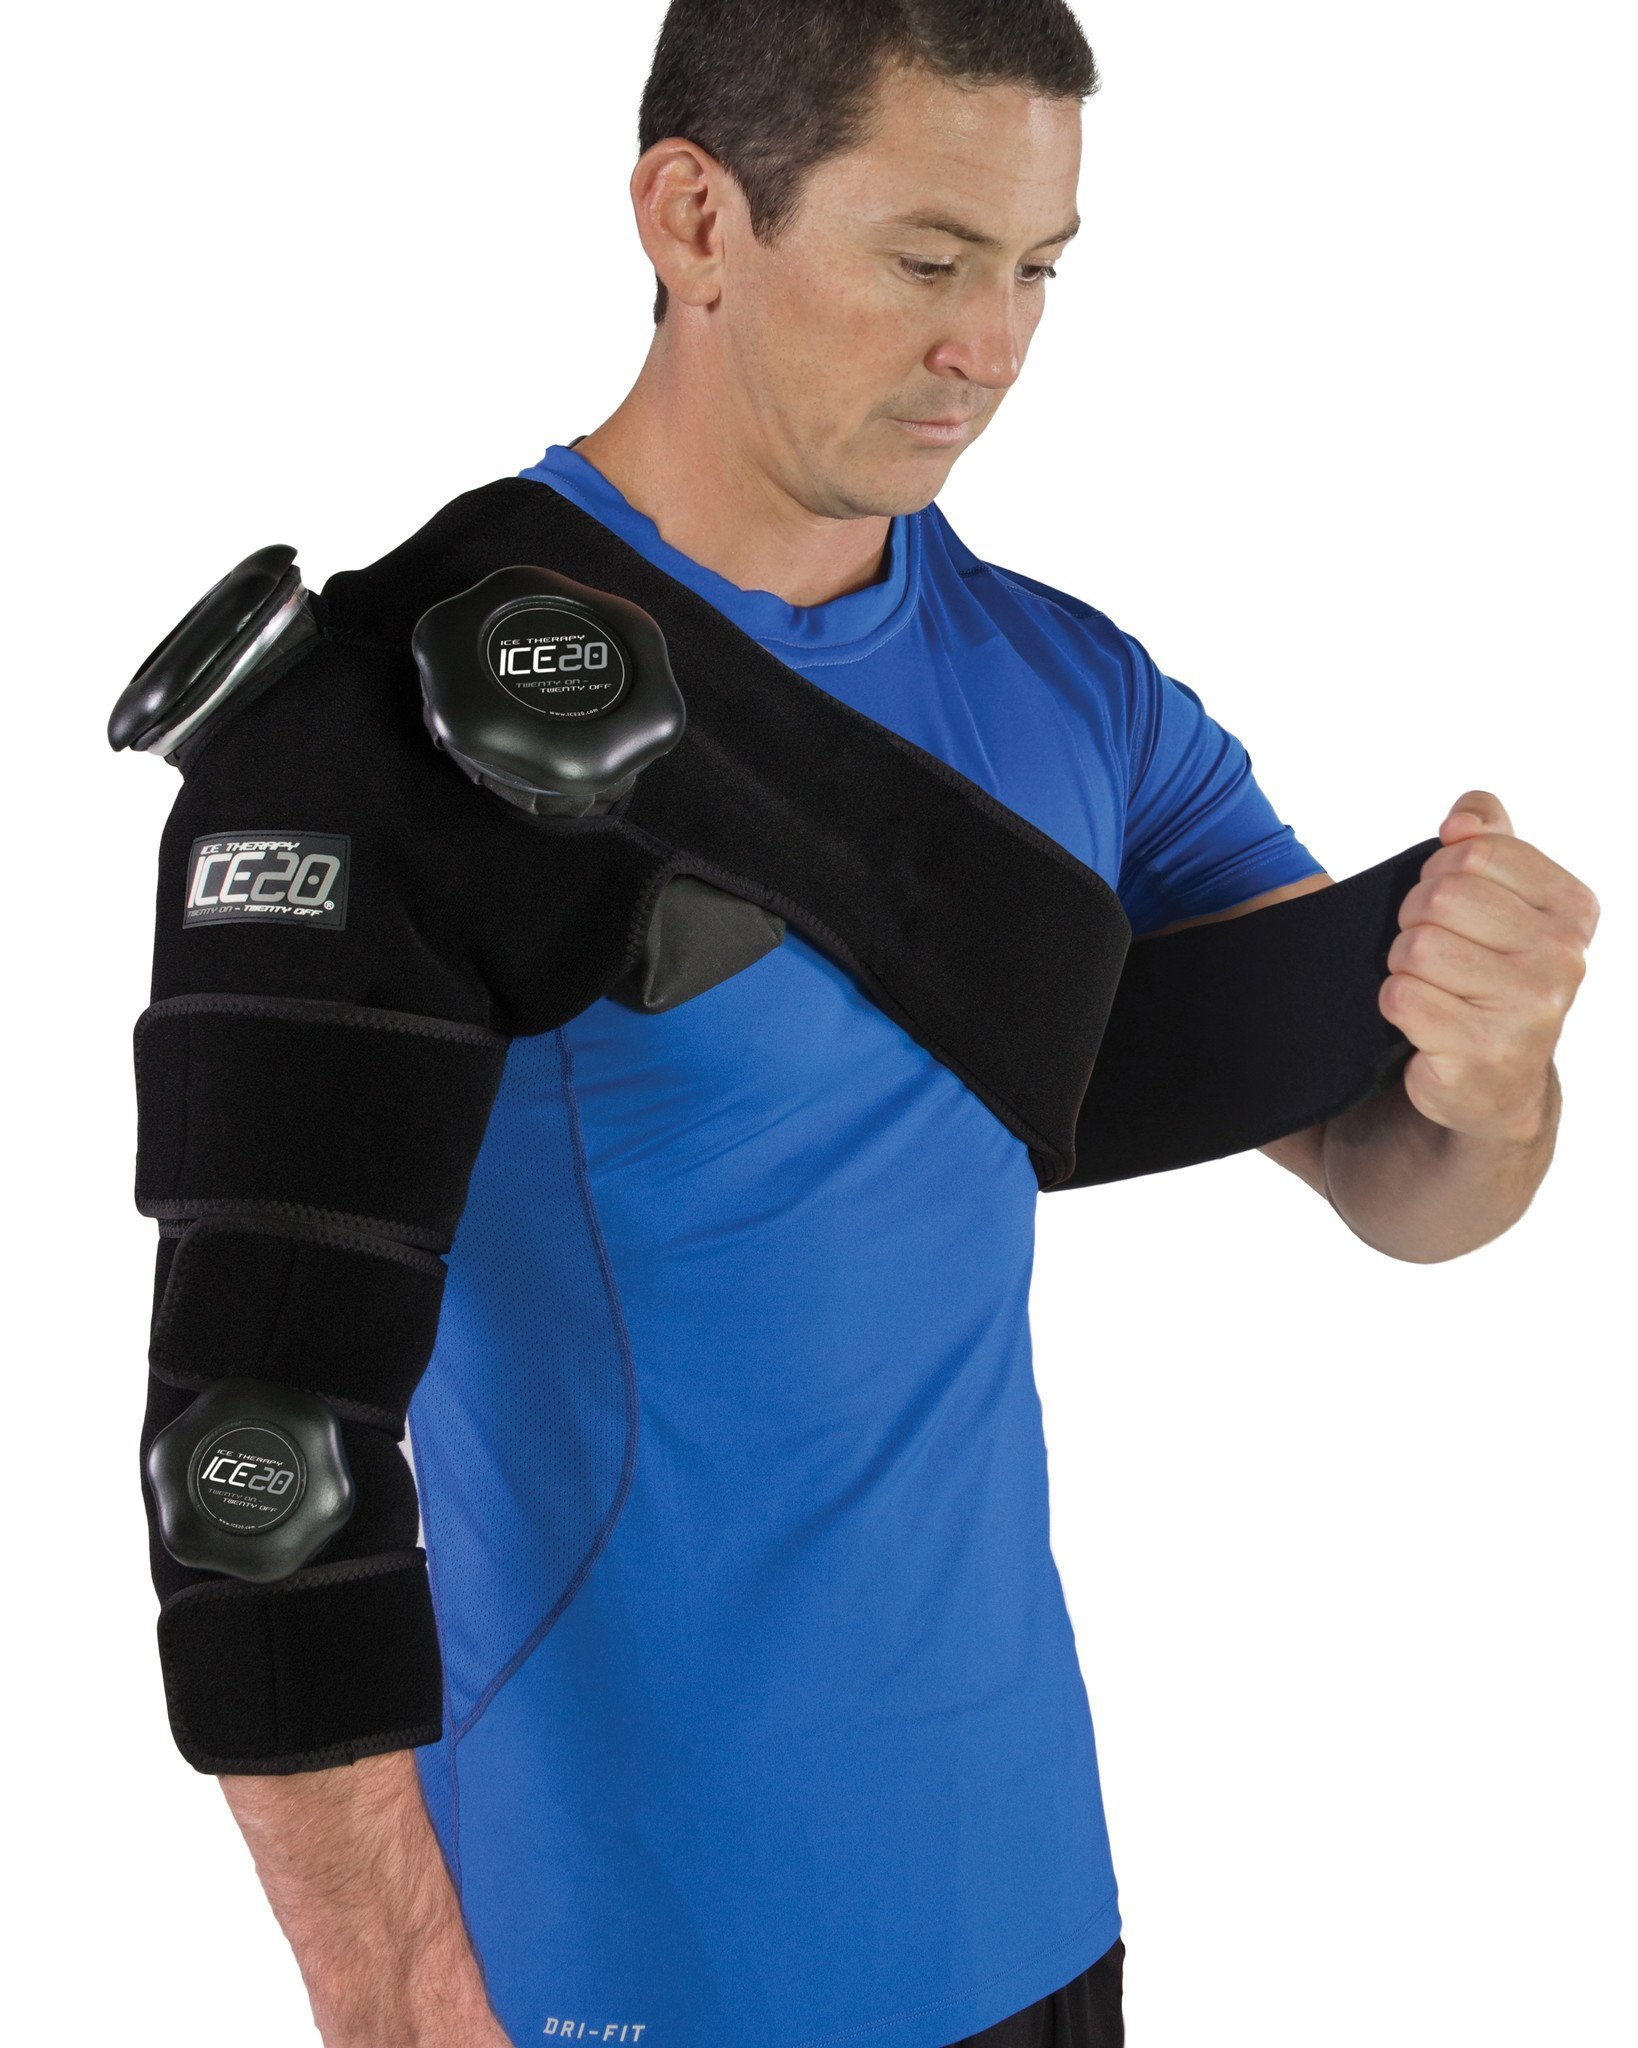 Ice20 Bownet Combo Arm Ice Compression Wrap (Ice-Combo Arm) by ICE20 (Image #4)